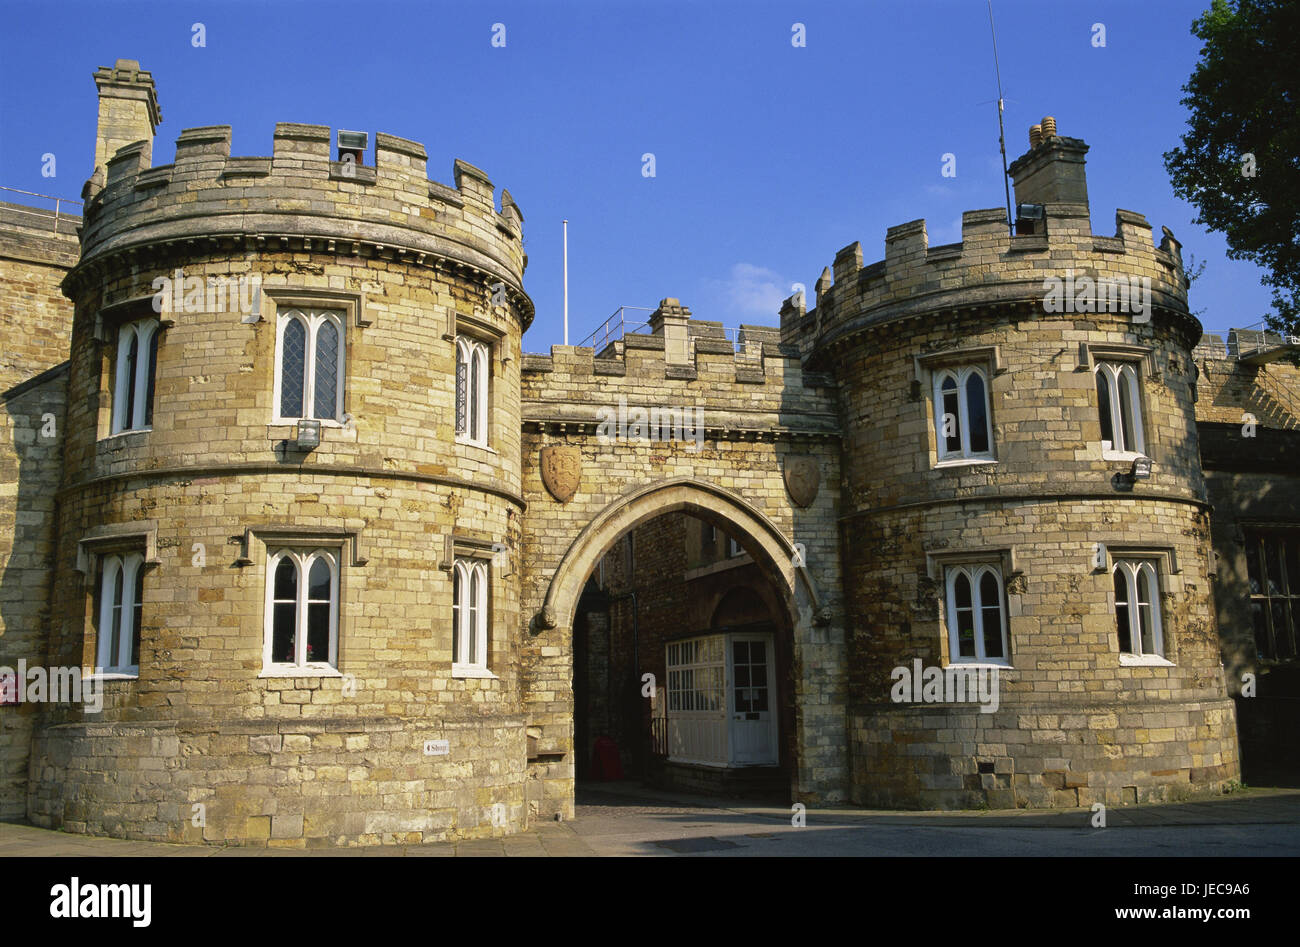 Great Britain, England, Lincolnshire, Lincoln, lock, input, detail, Europe, town, destination, place of interest, - Stock Image